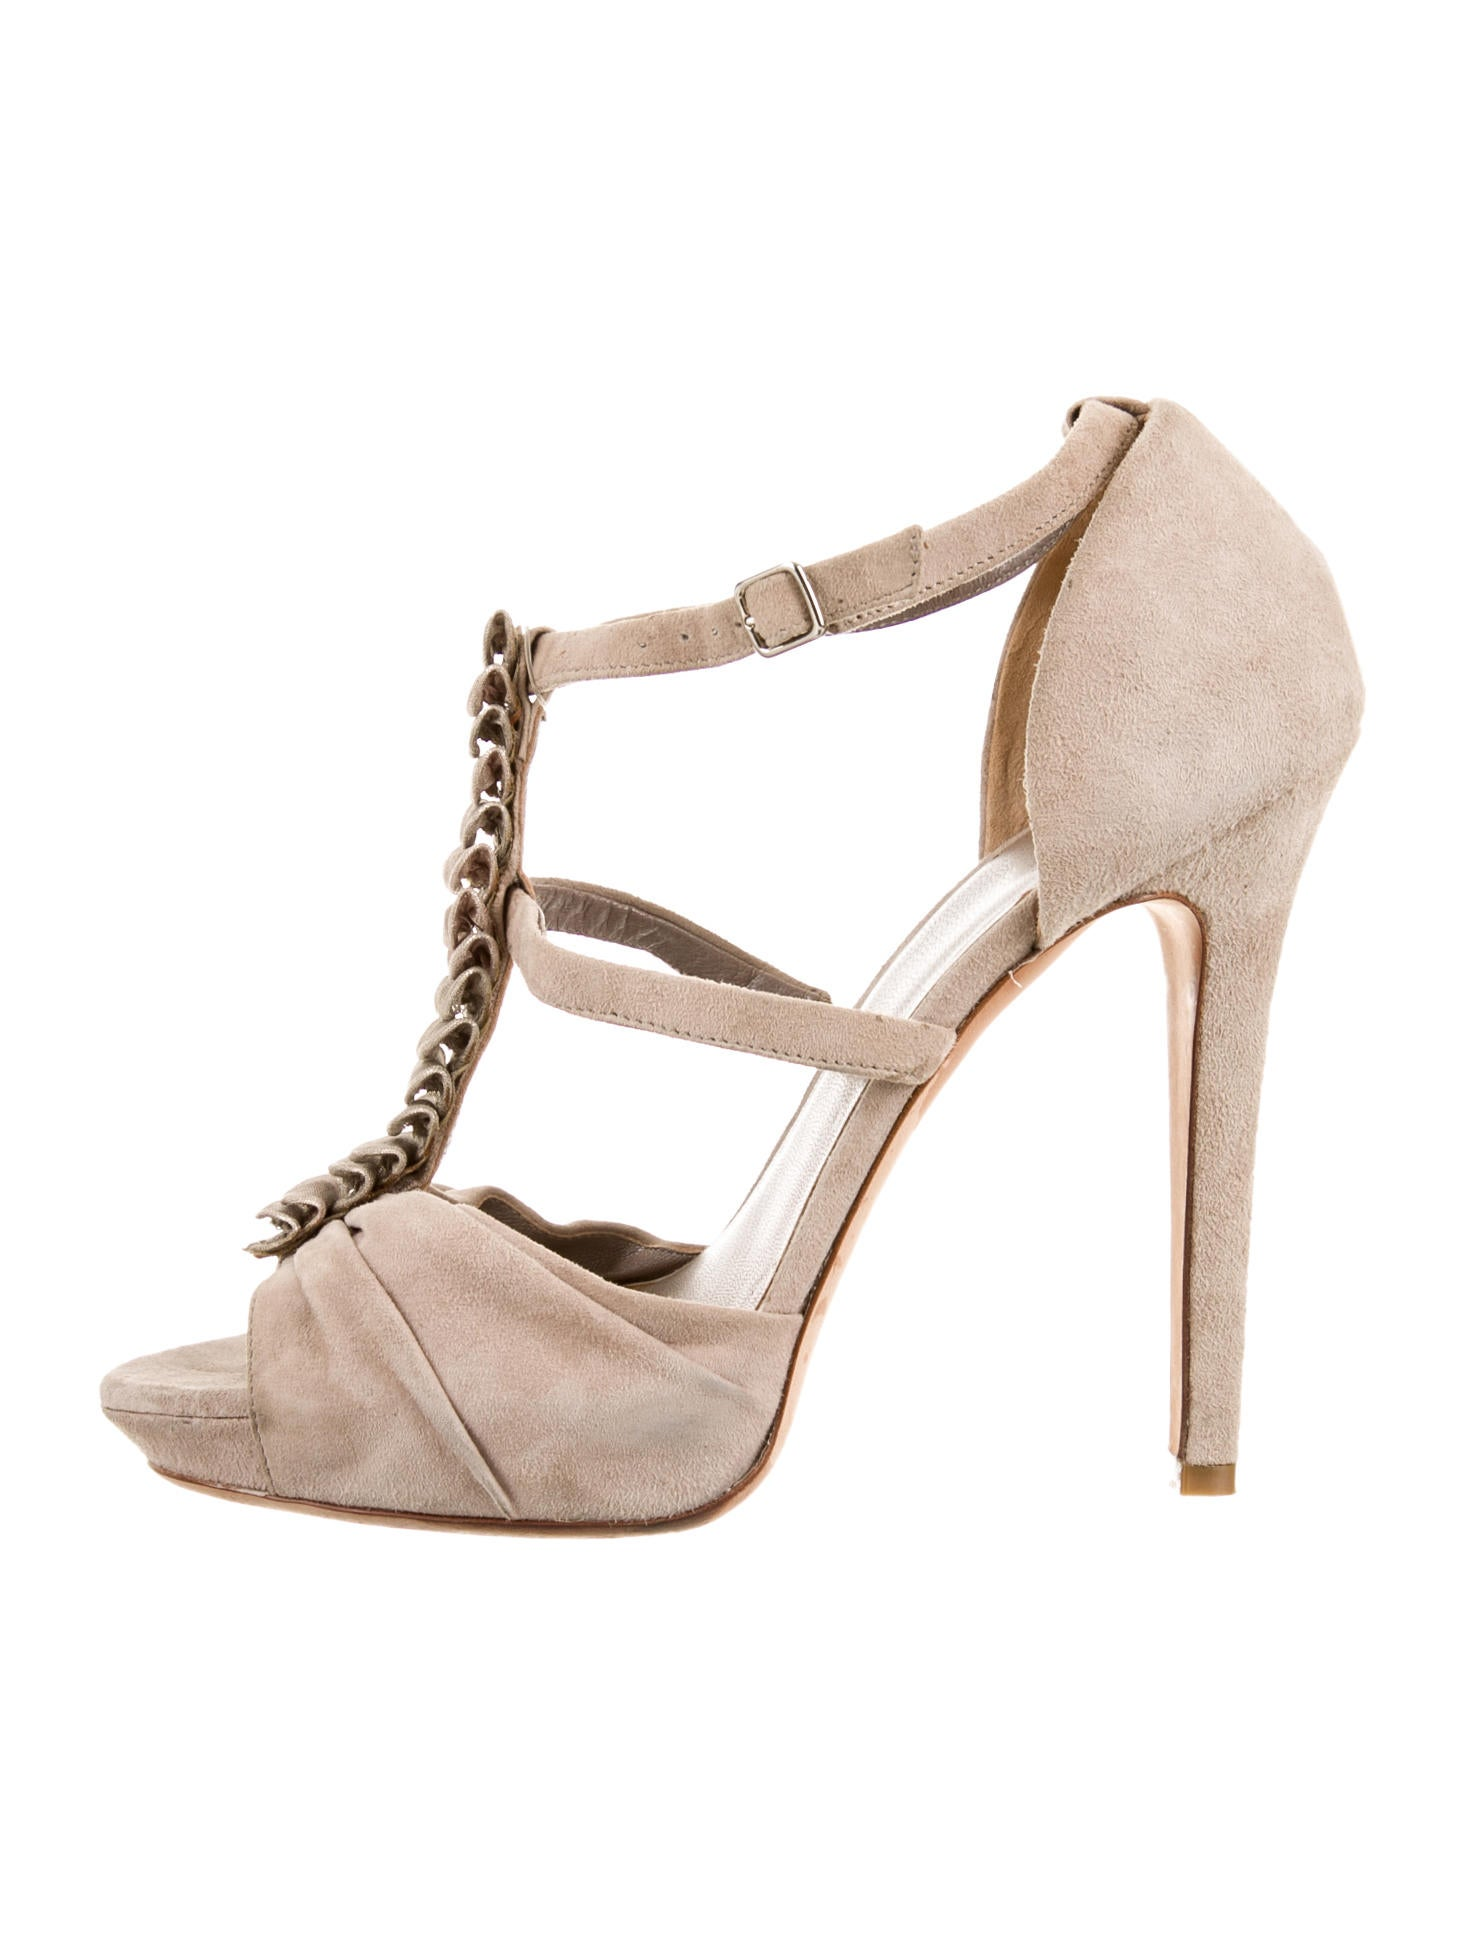 Versace Sandals - Shoes - VES23189 | The RealReal